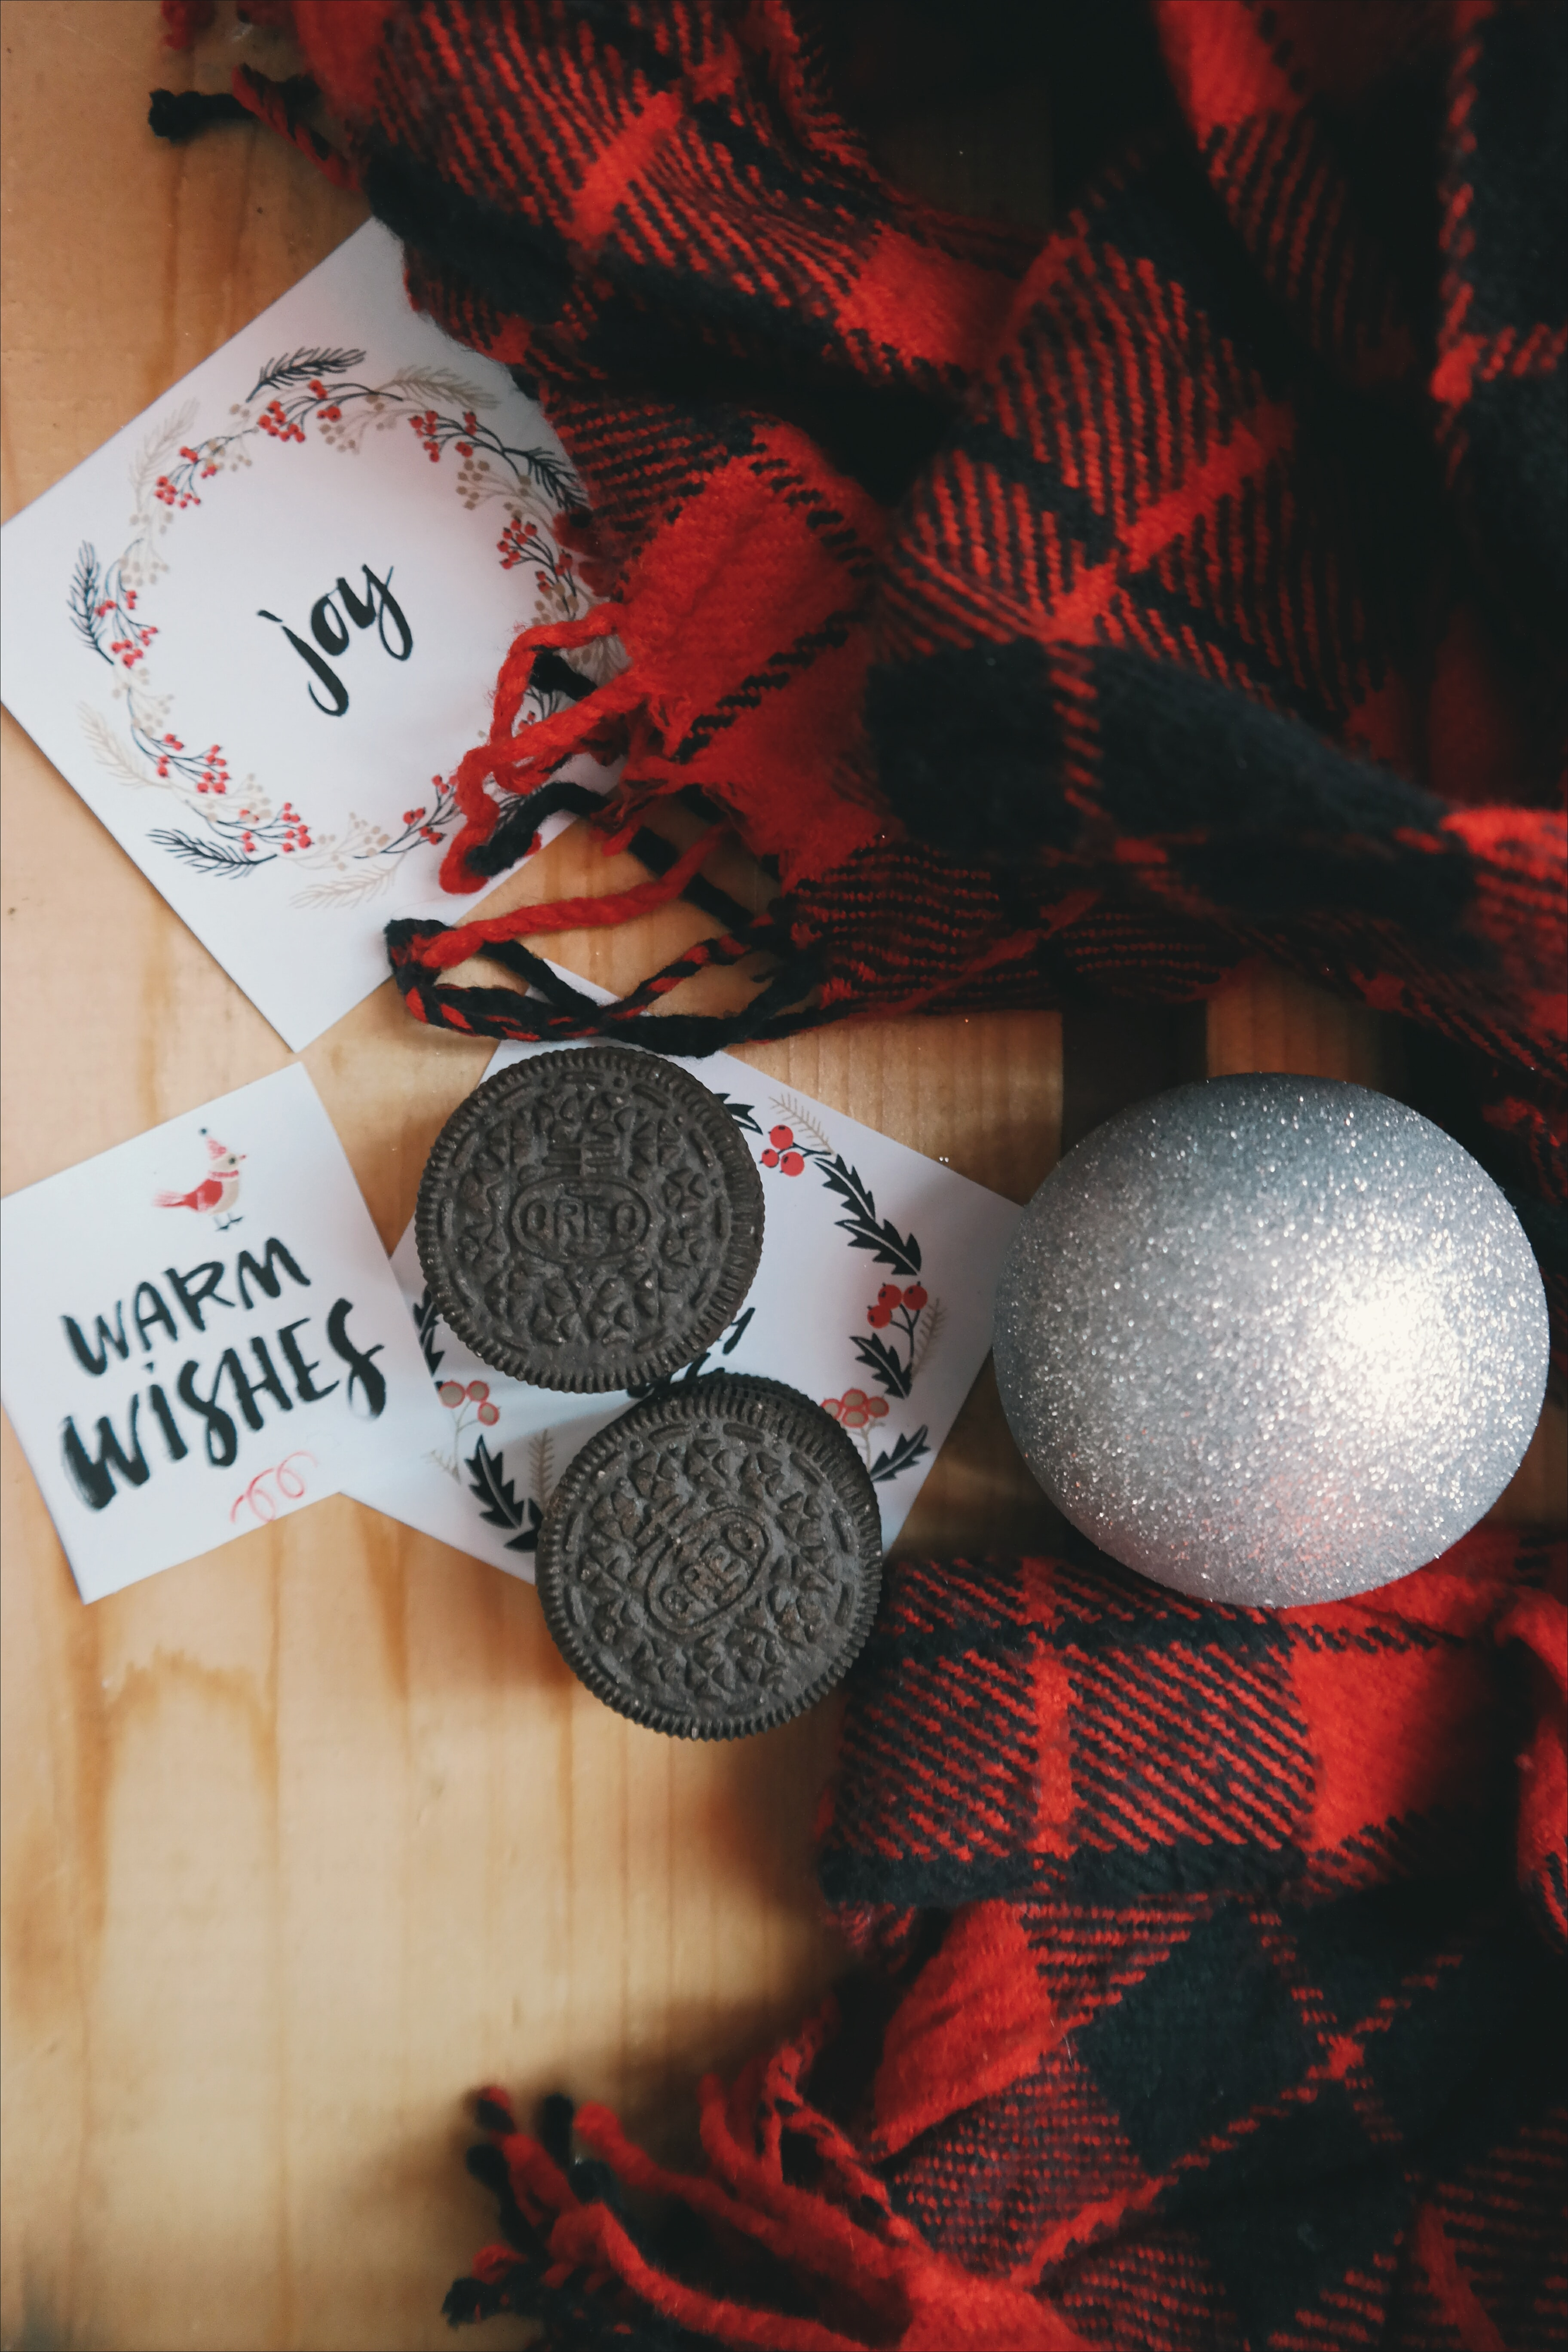 Oreo cookies around Christmas paper notes, an ornament and red plaid fabric.